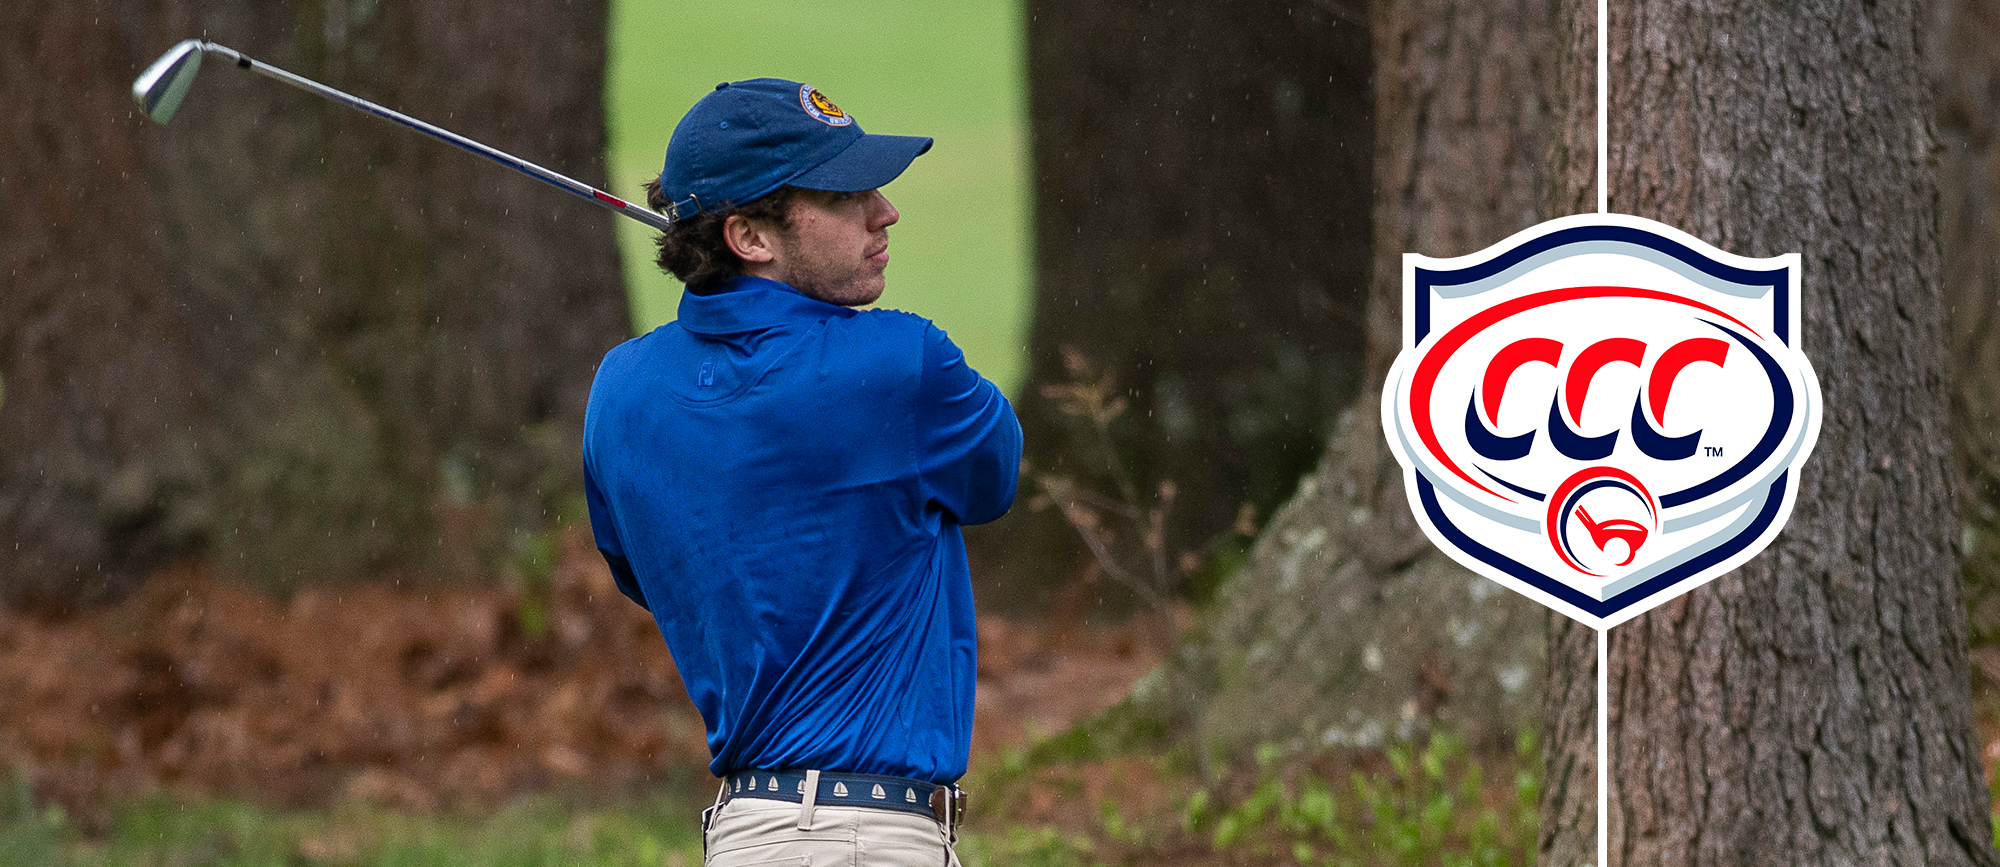 Ryan Zogby Named CCC Golfer of the Week